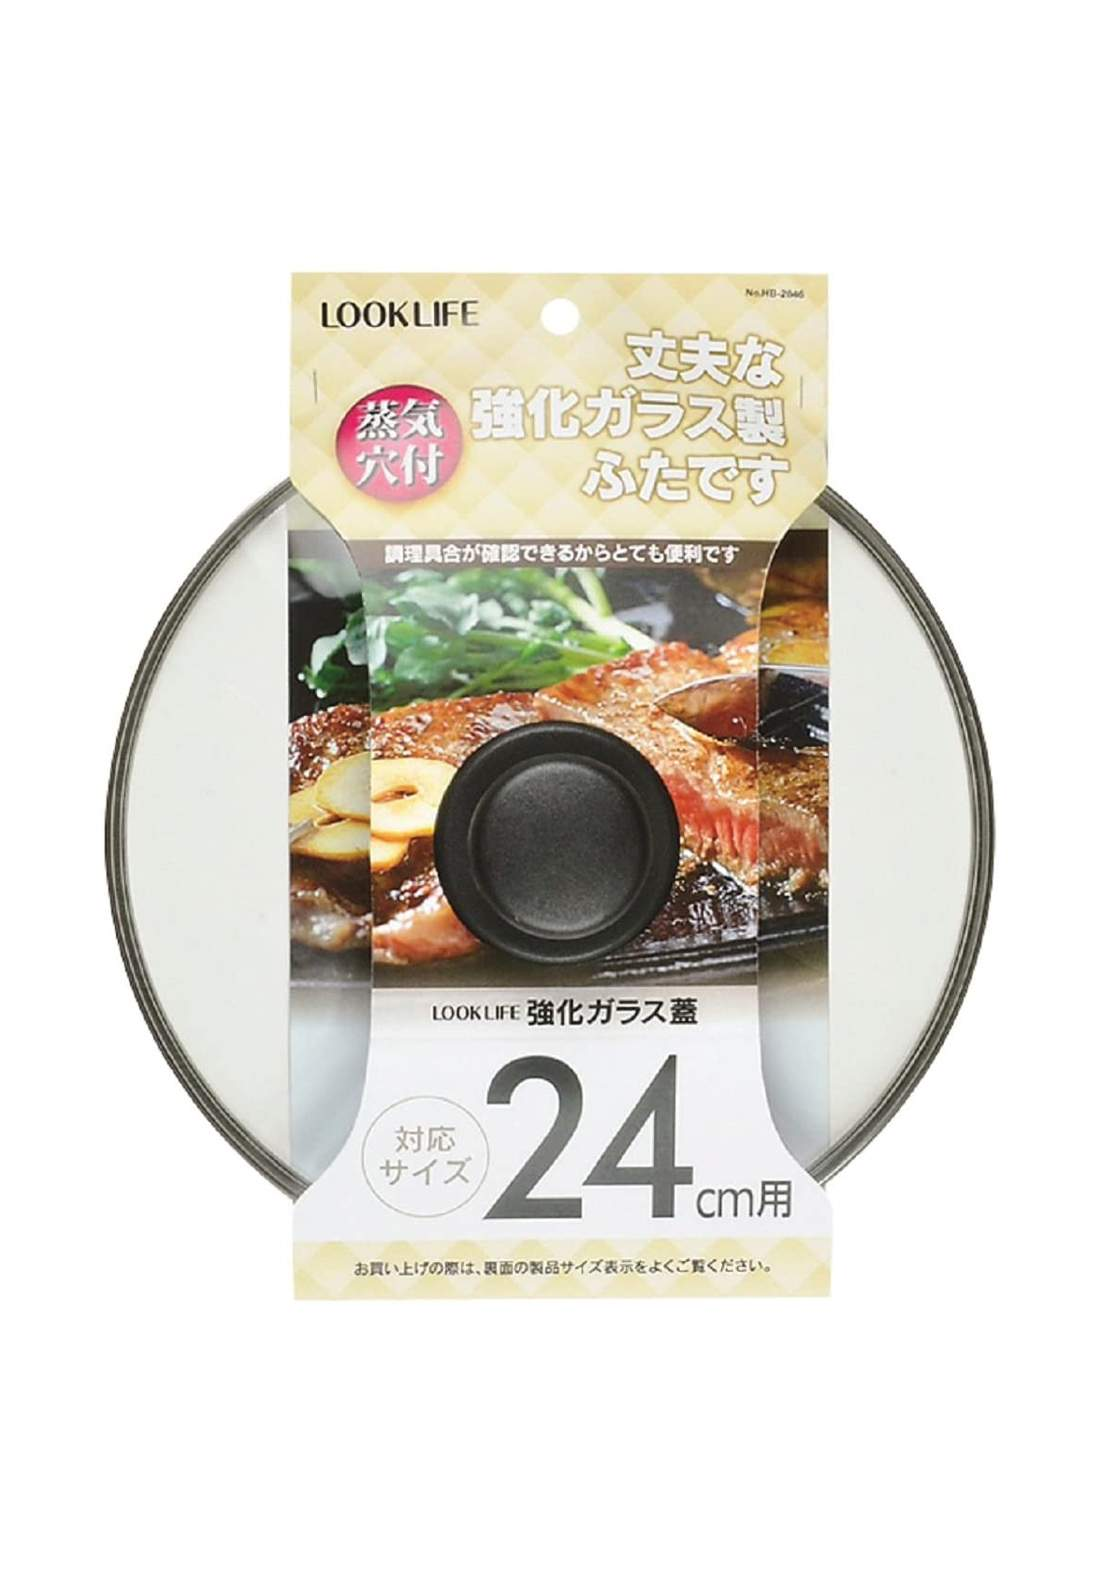 Pearl Metal HB-2846 Tempered Glass Frying Pan 24 cm غطاء قدر